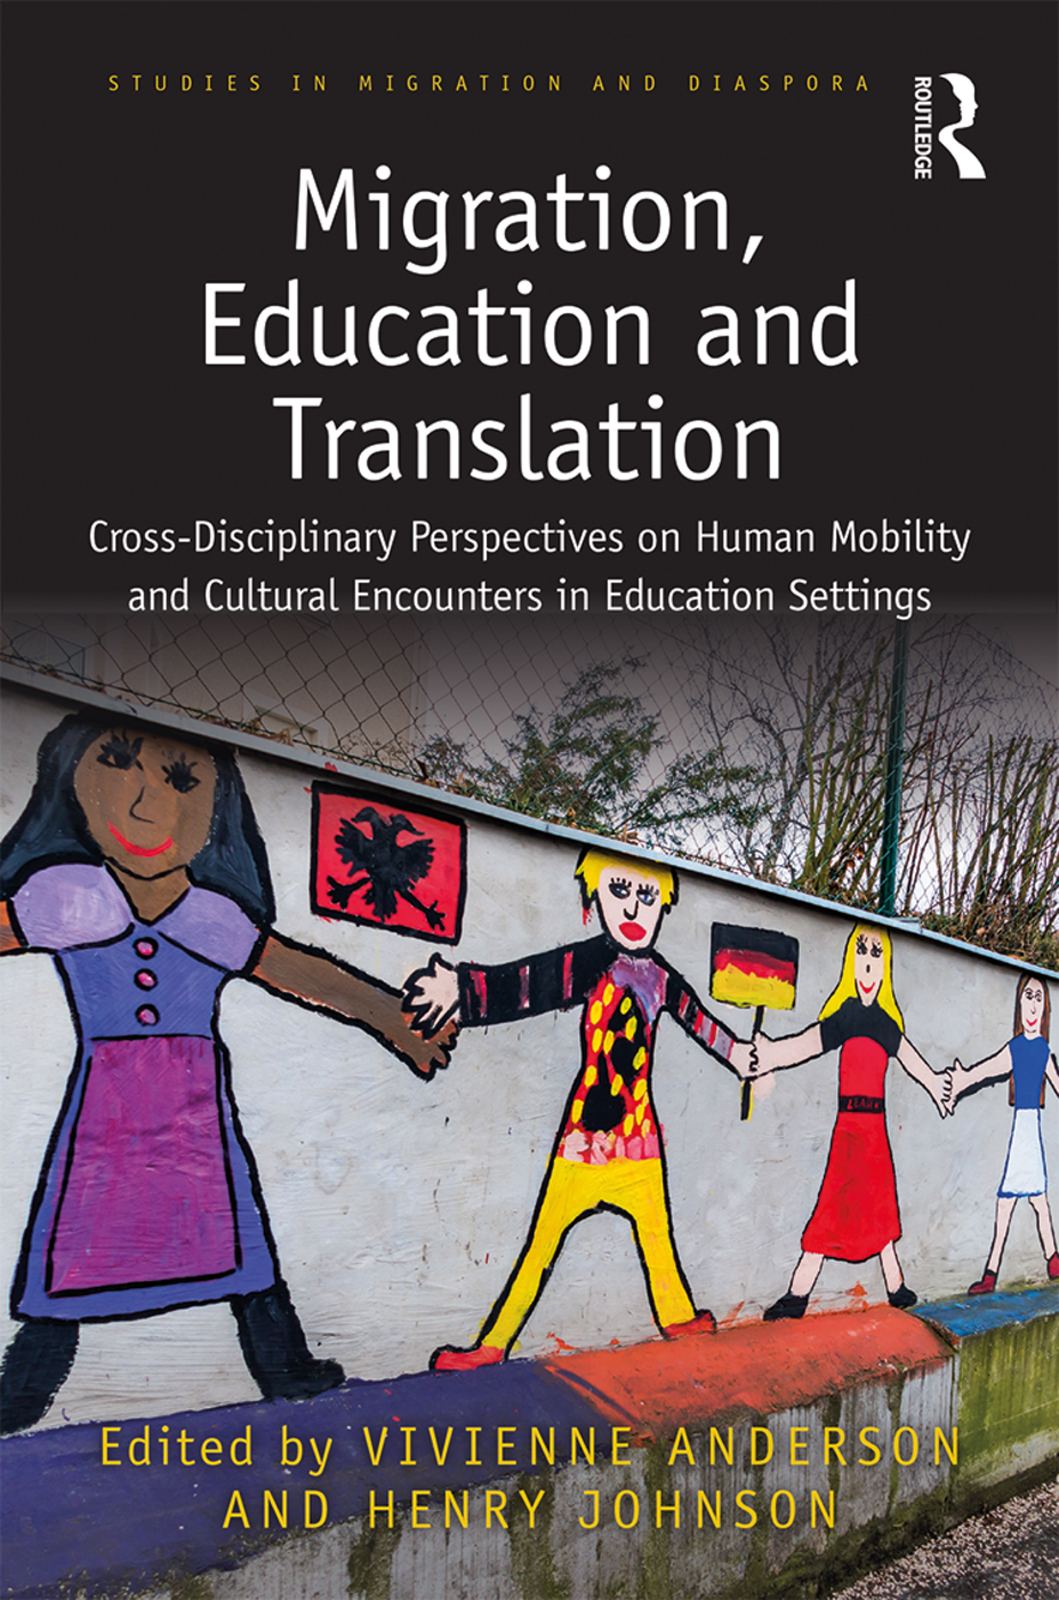 Migration, Education and Translation: Cross-Disciplinary Perspectives on Human Mobility and Cultural Encounters in Education Settings book cover